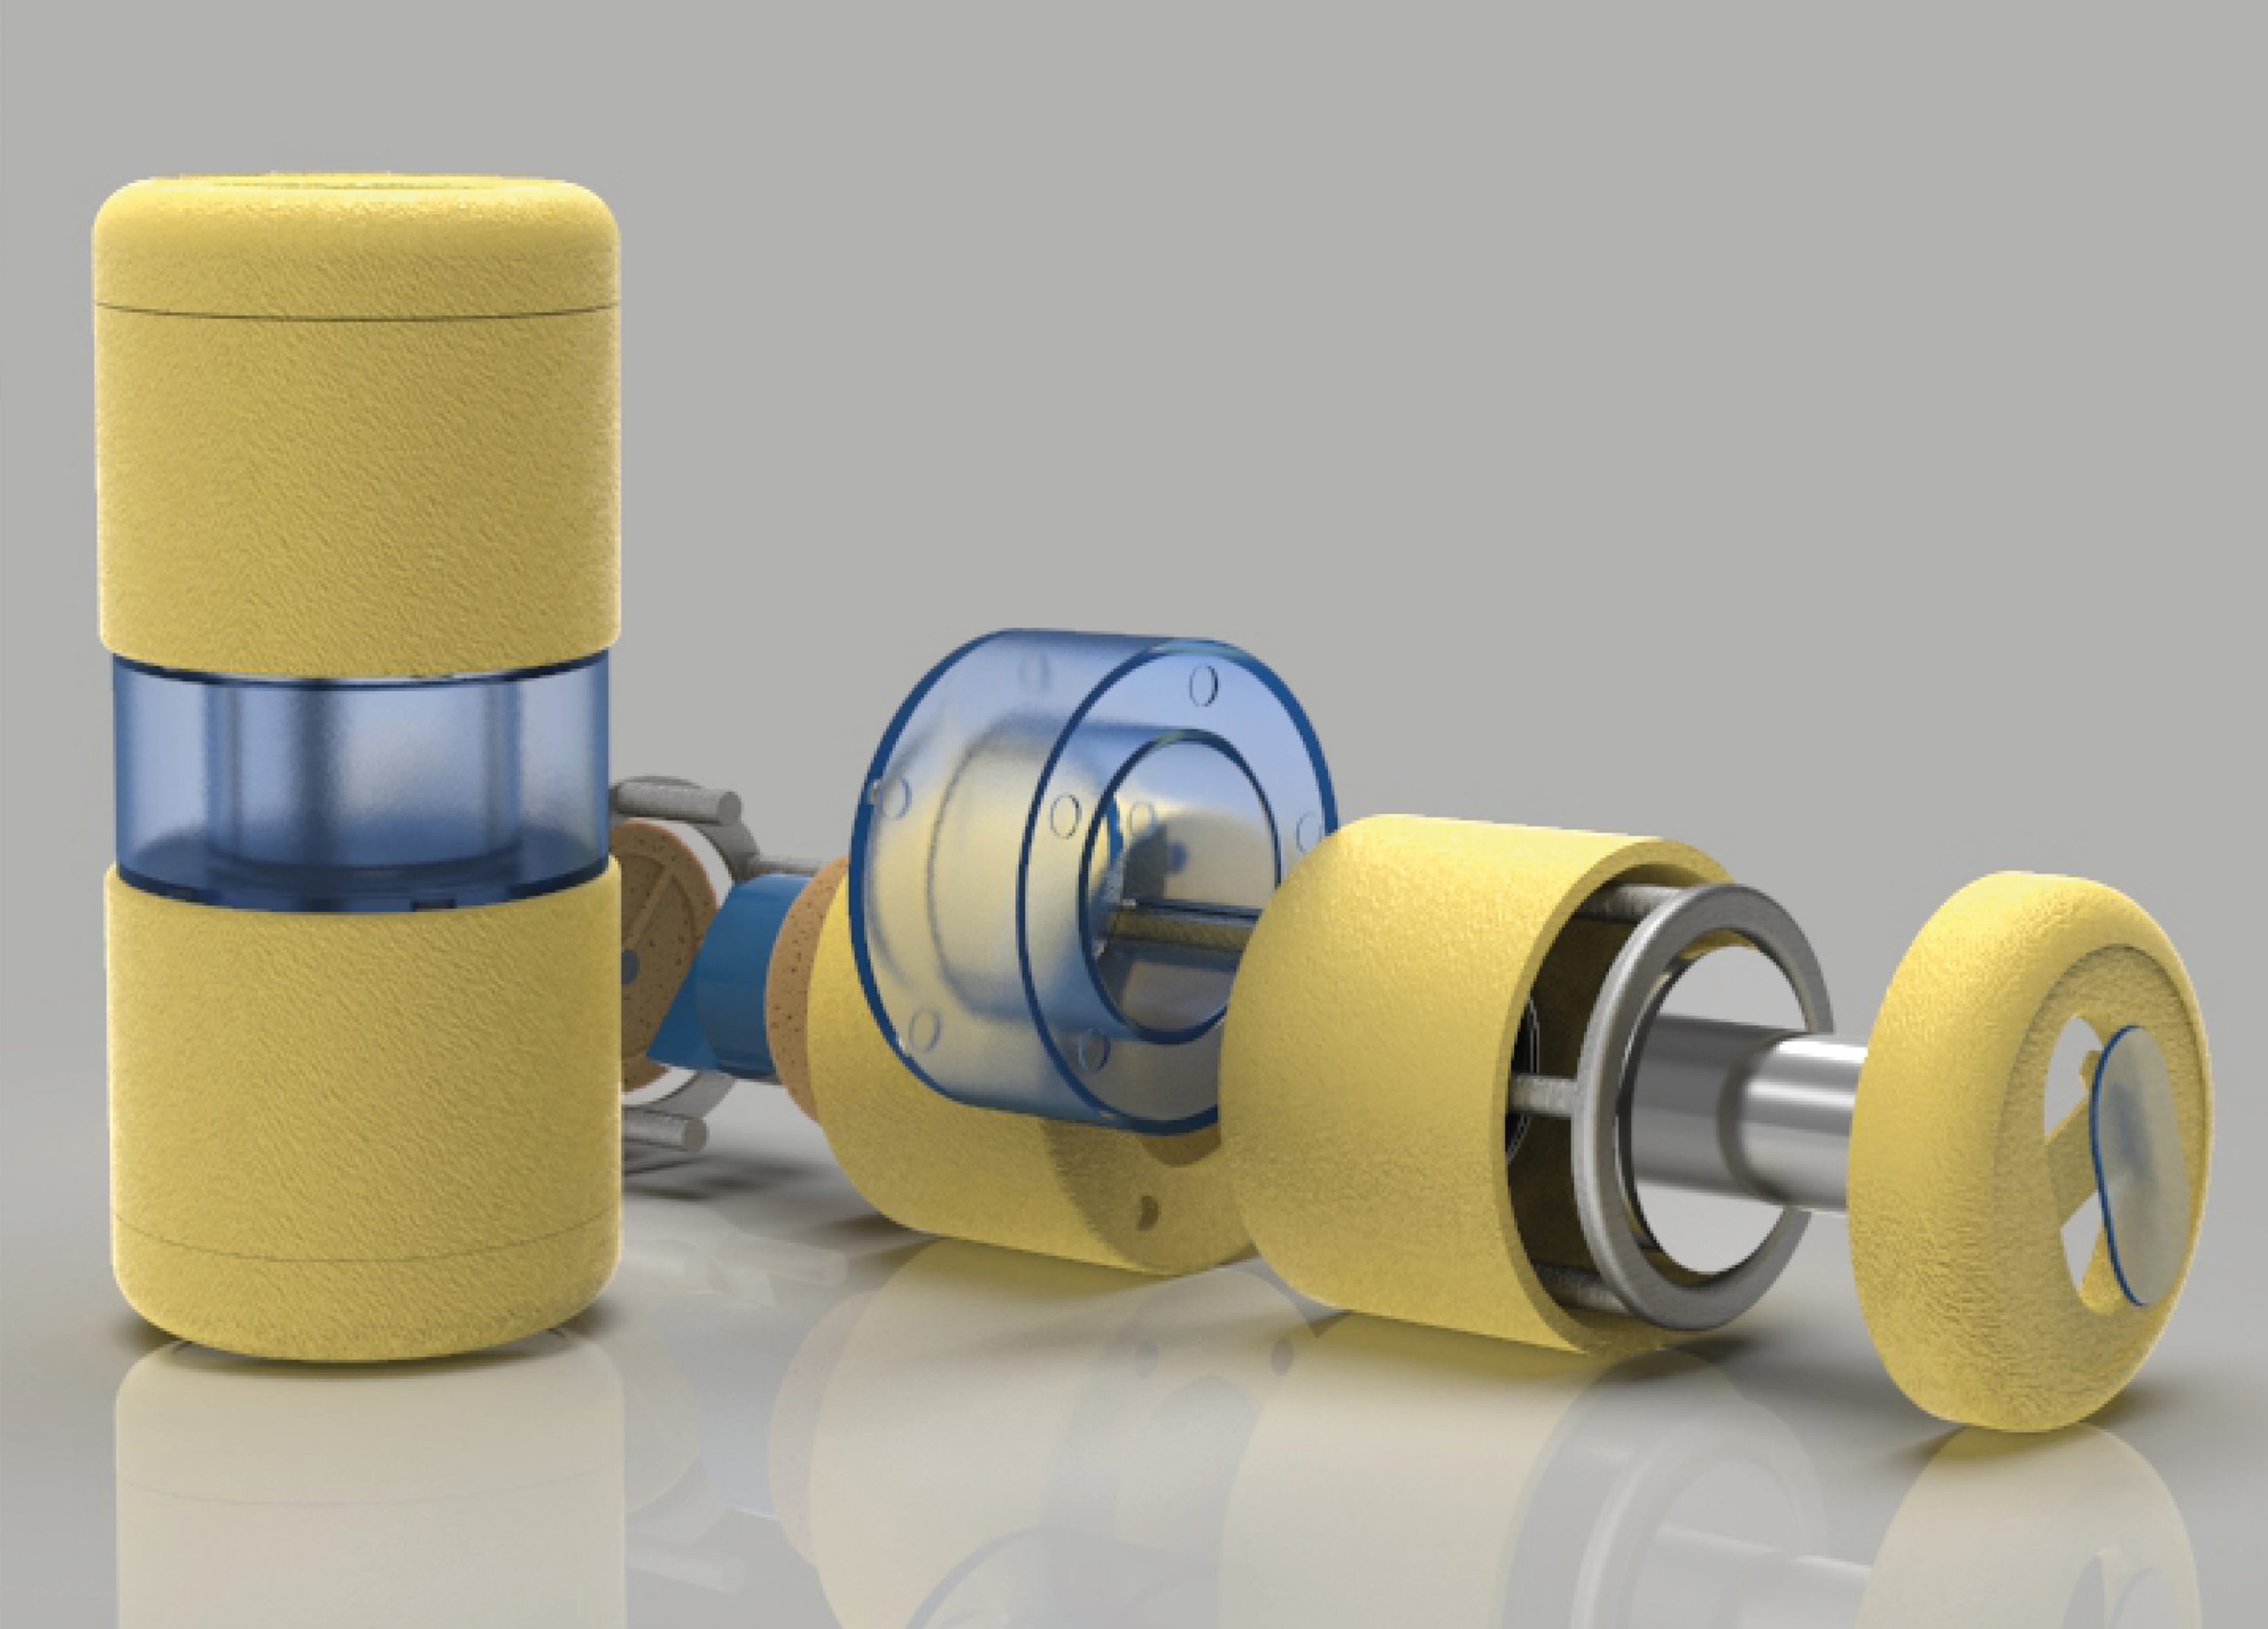 A product for testing bacteria contaminants in water,